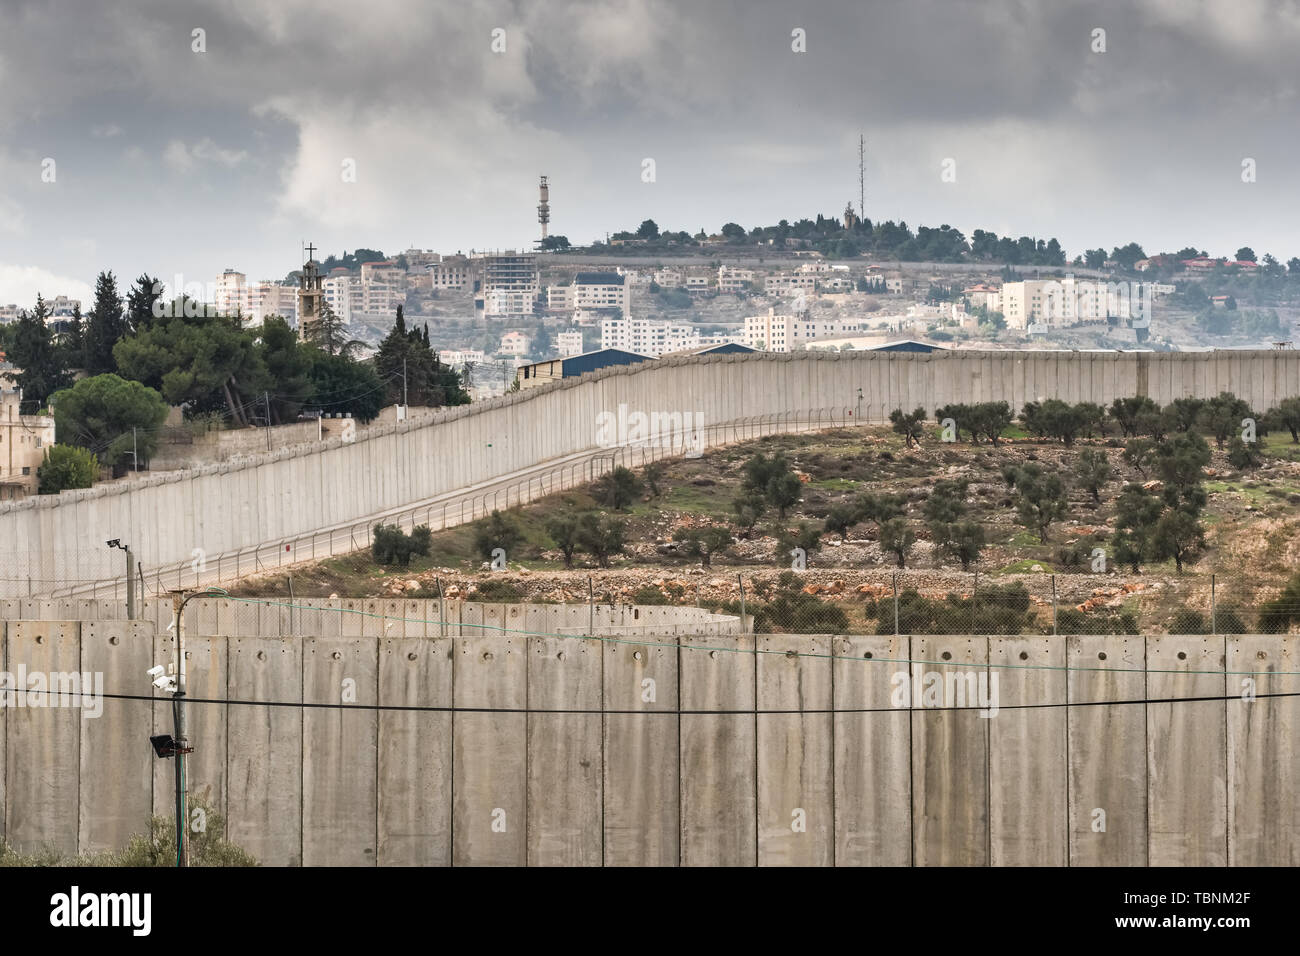 Separation wall between Israel and West Bank - Stock Image